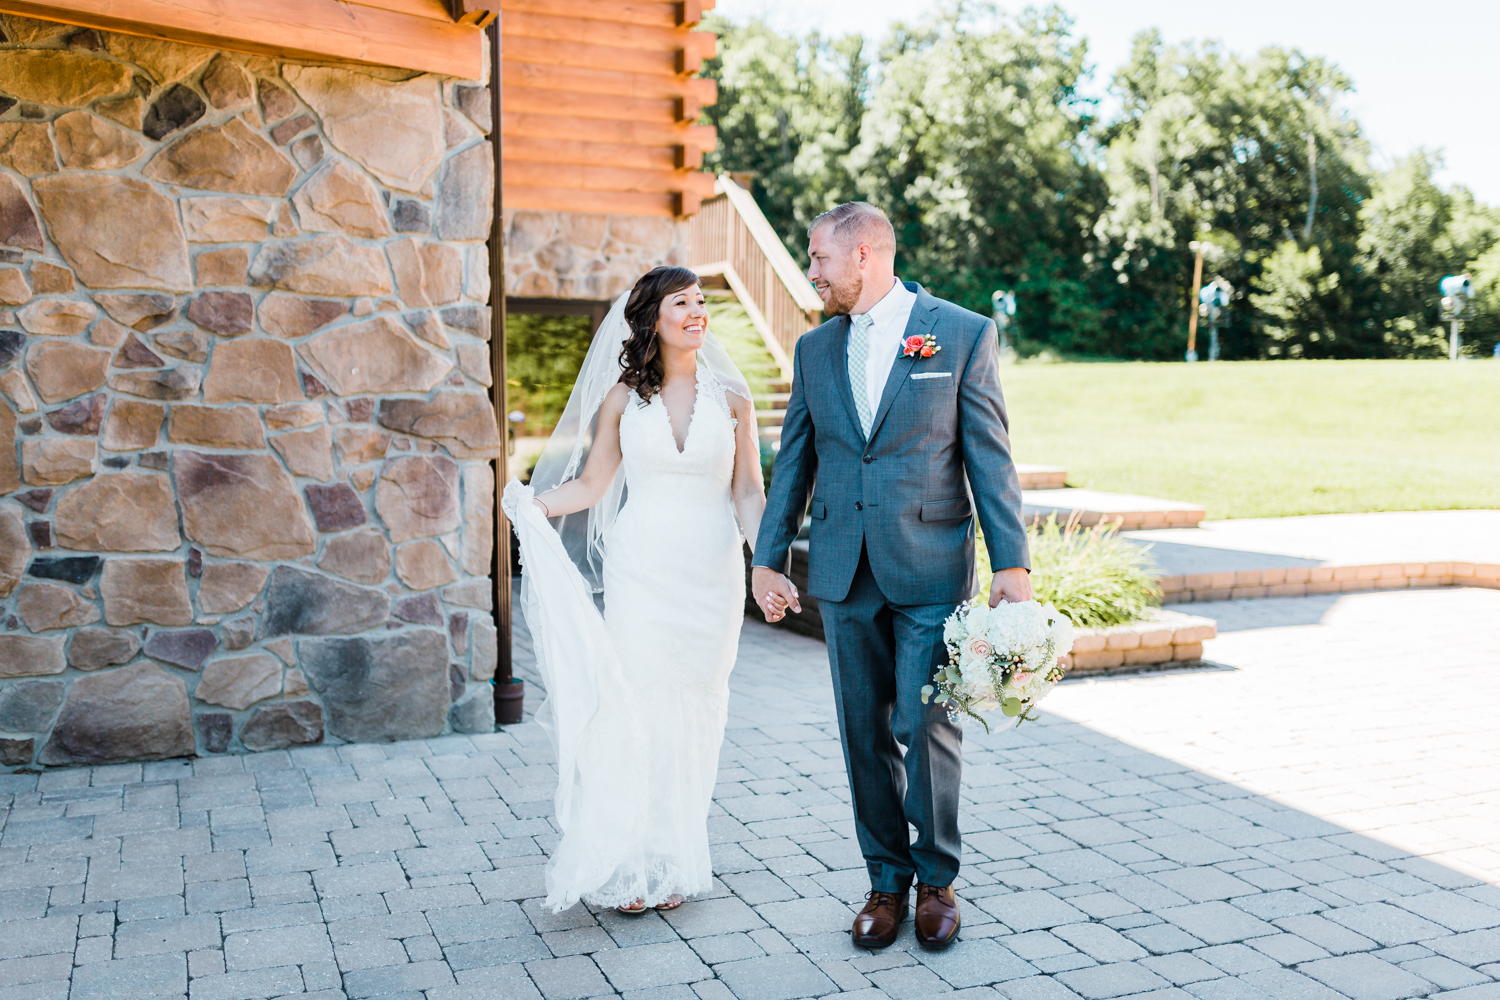 bride and groom walking happily together - log cabin weddings - mountain wedding inspo - maryland wedding venues - pennsylvania wedding venues